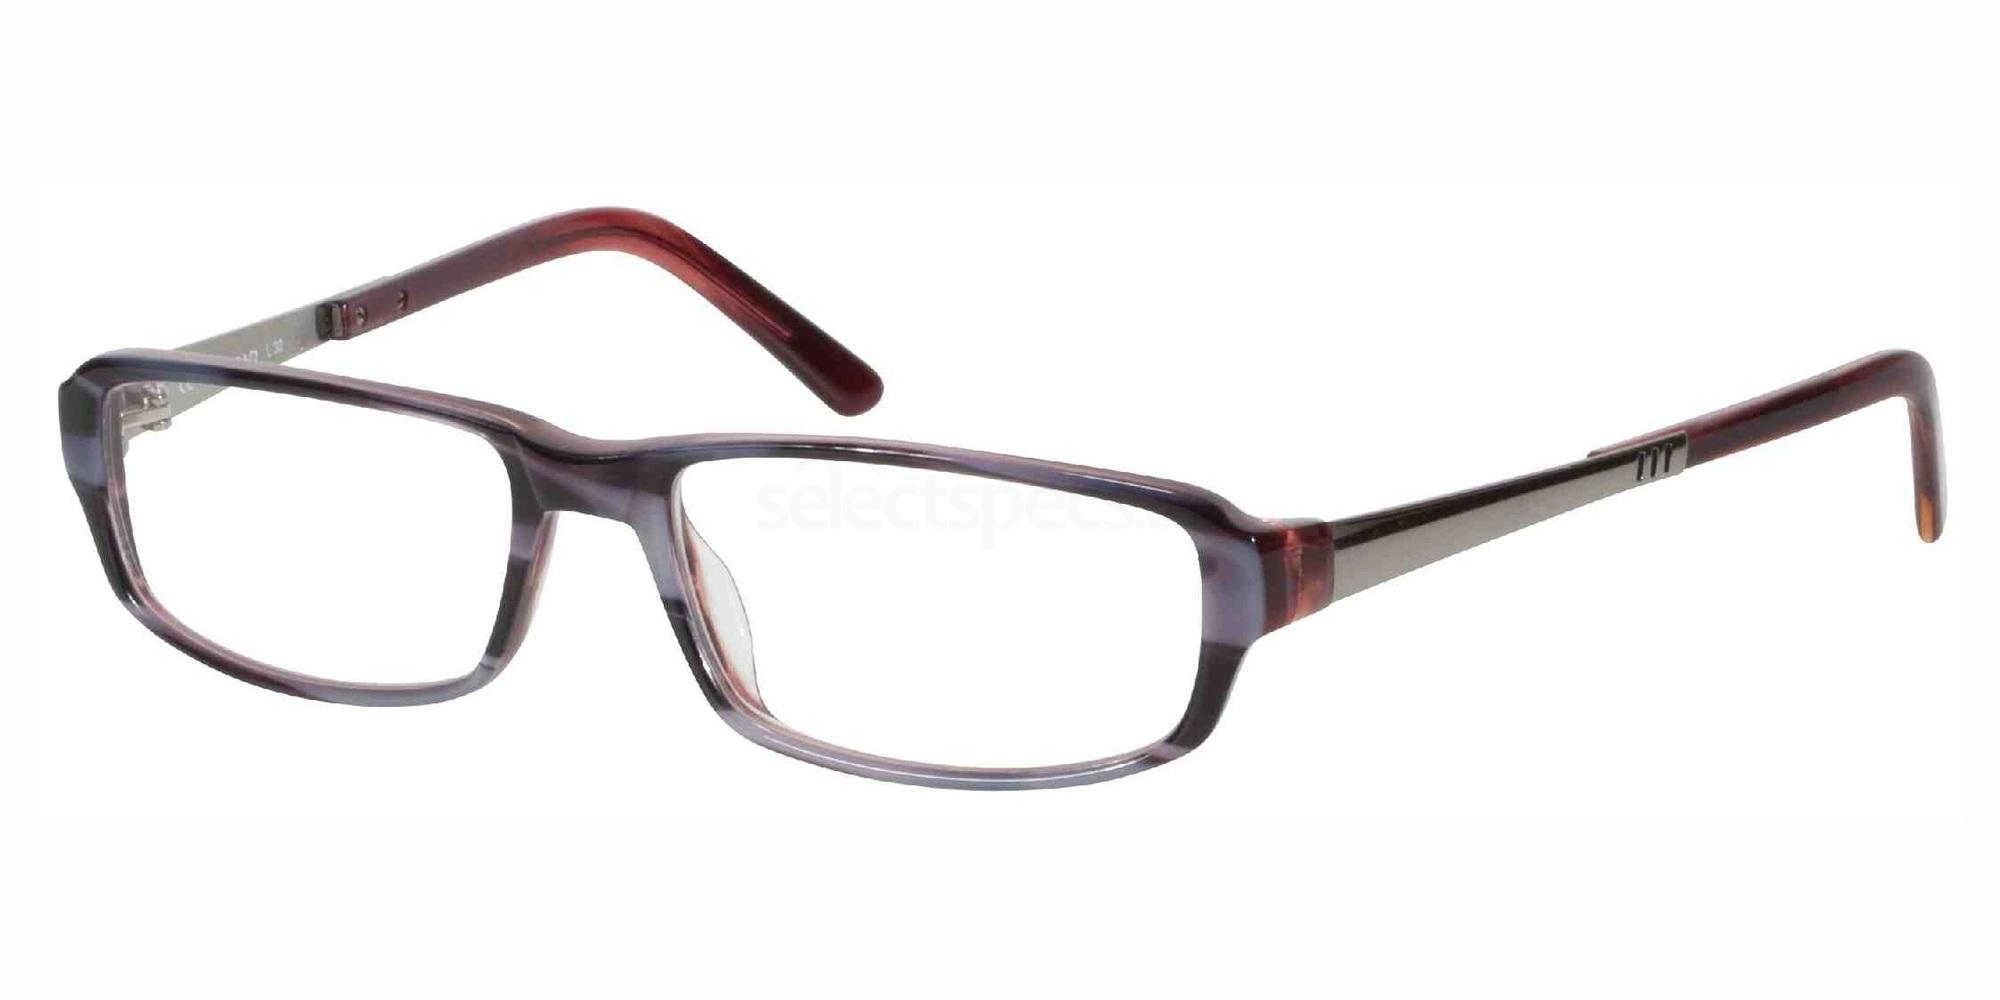 8342 12003 Glasses, MENRAD Eyewear